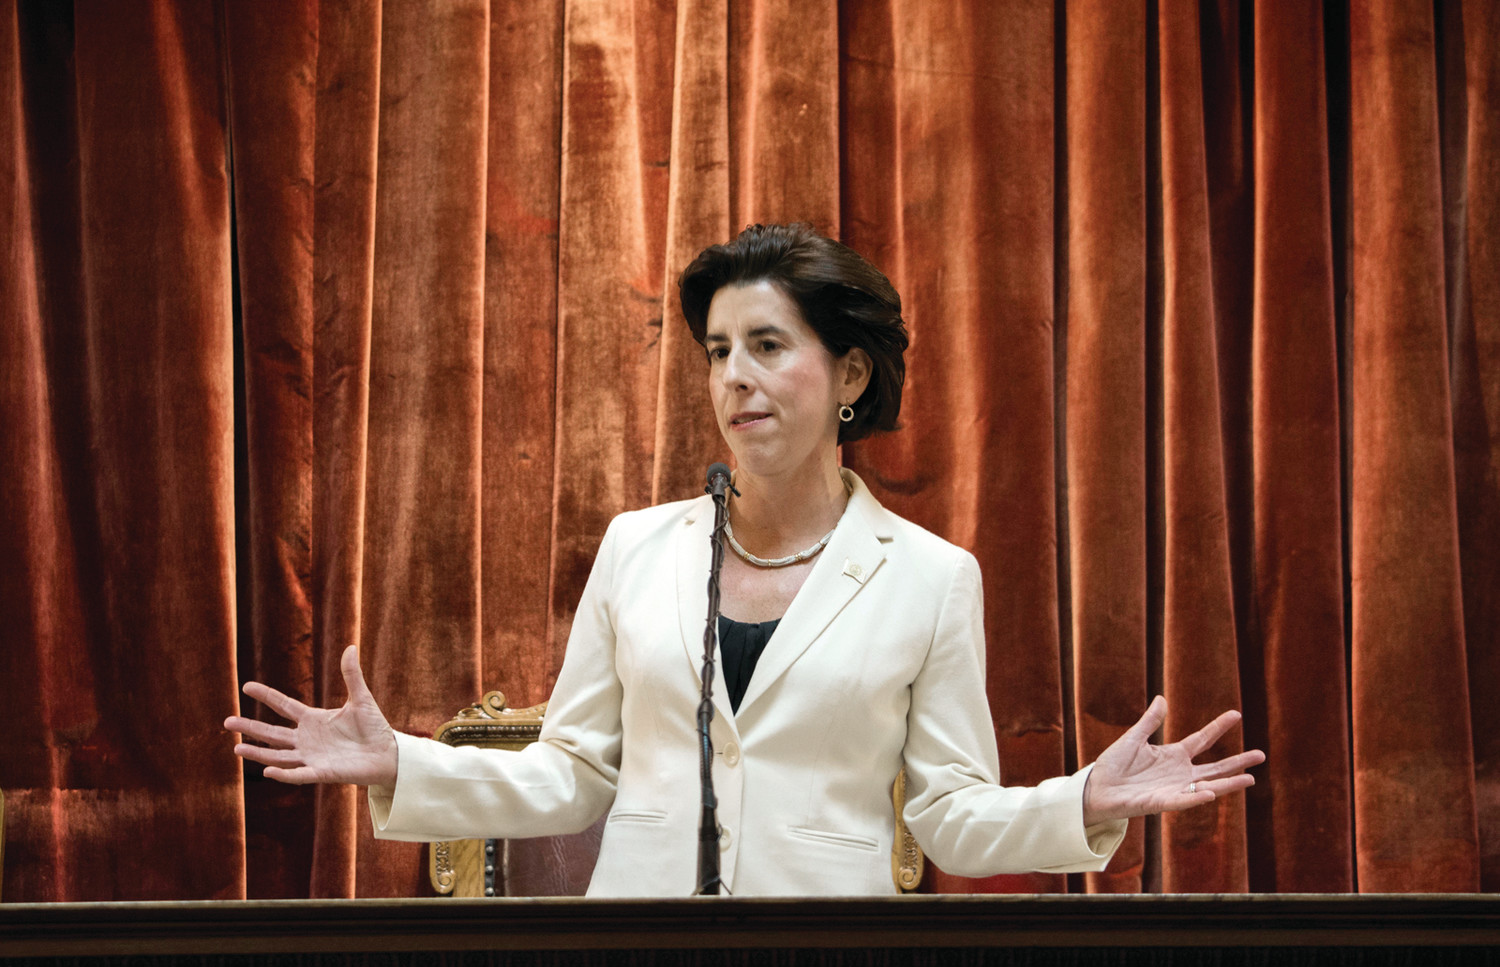 IT'S ALL GOOD: Gov. Gina Raimondo highlighted the state economy in her State of the State address Tuesday.